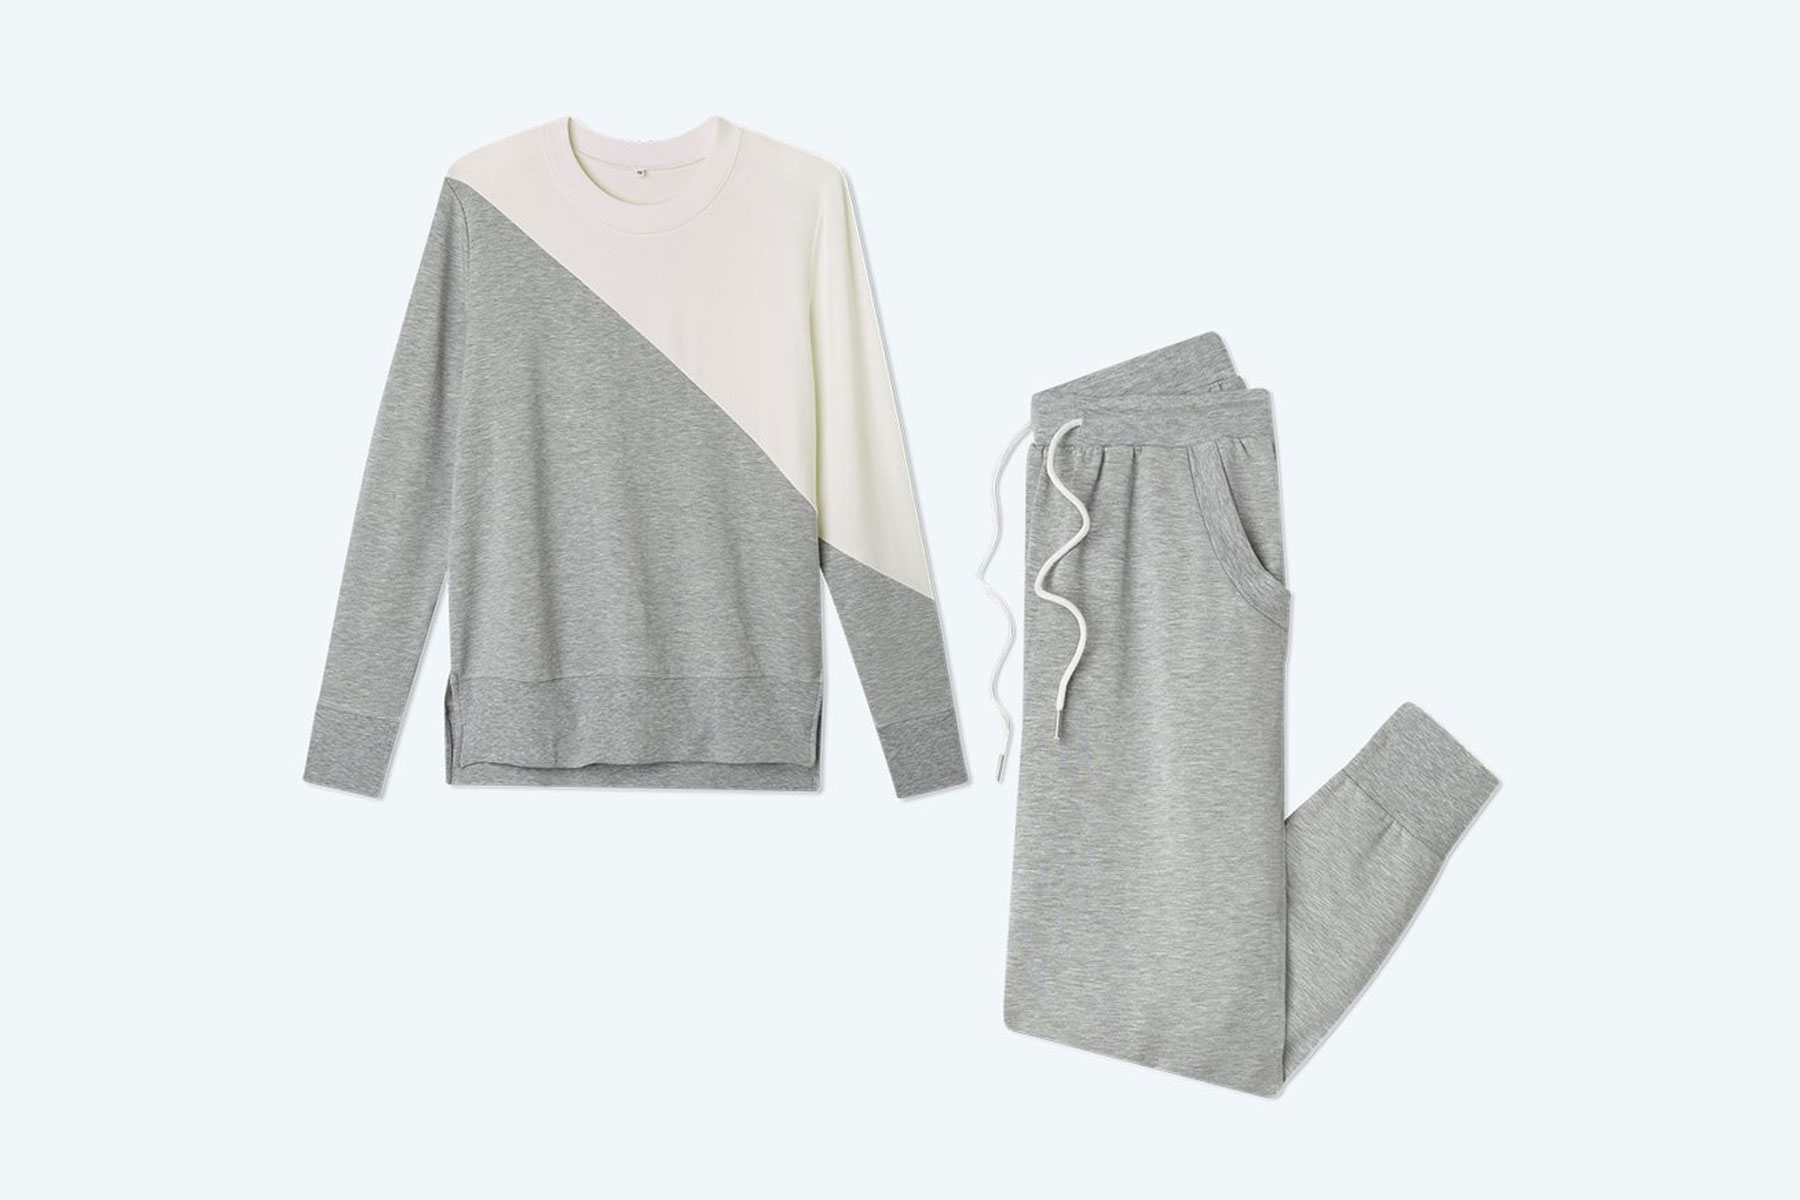 White and grey sweatsuit